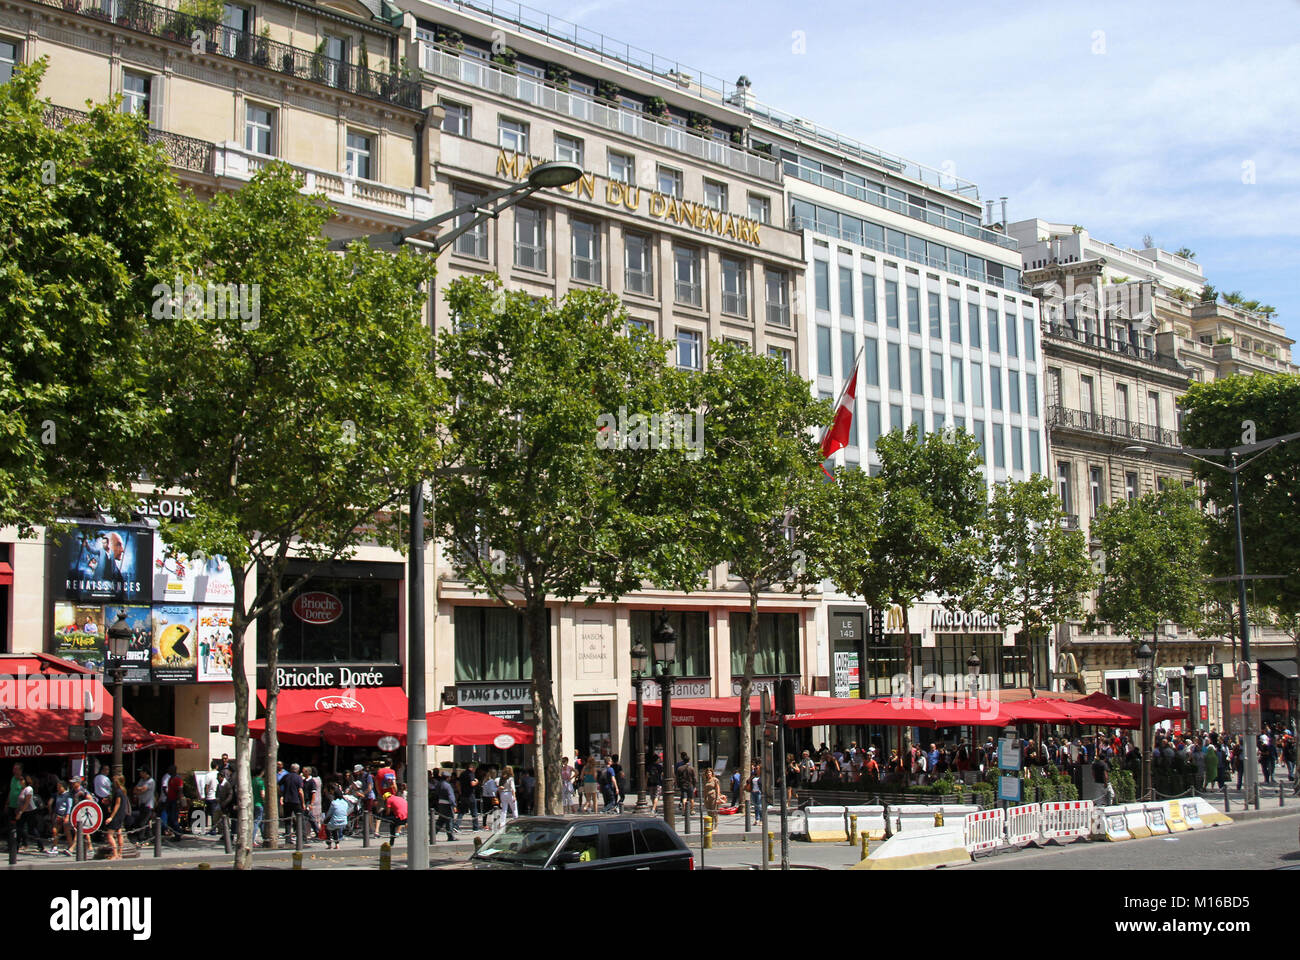 Champs elysees shops stock photos champs elysees shops - La maison des champs elysees ...